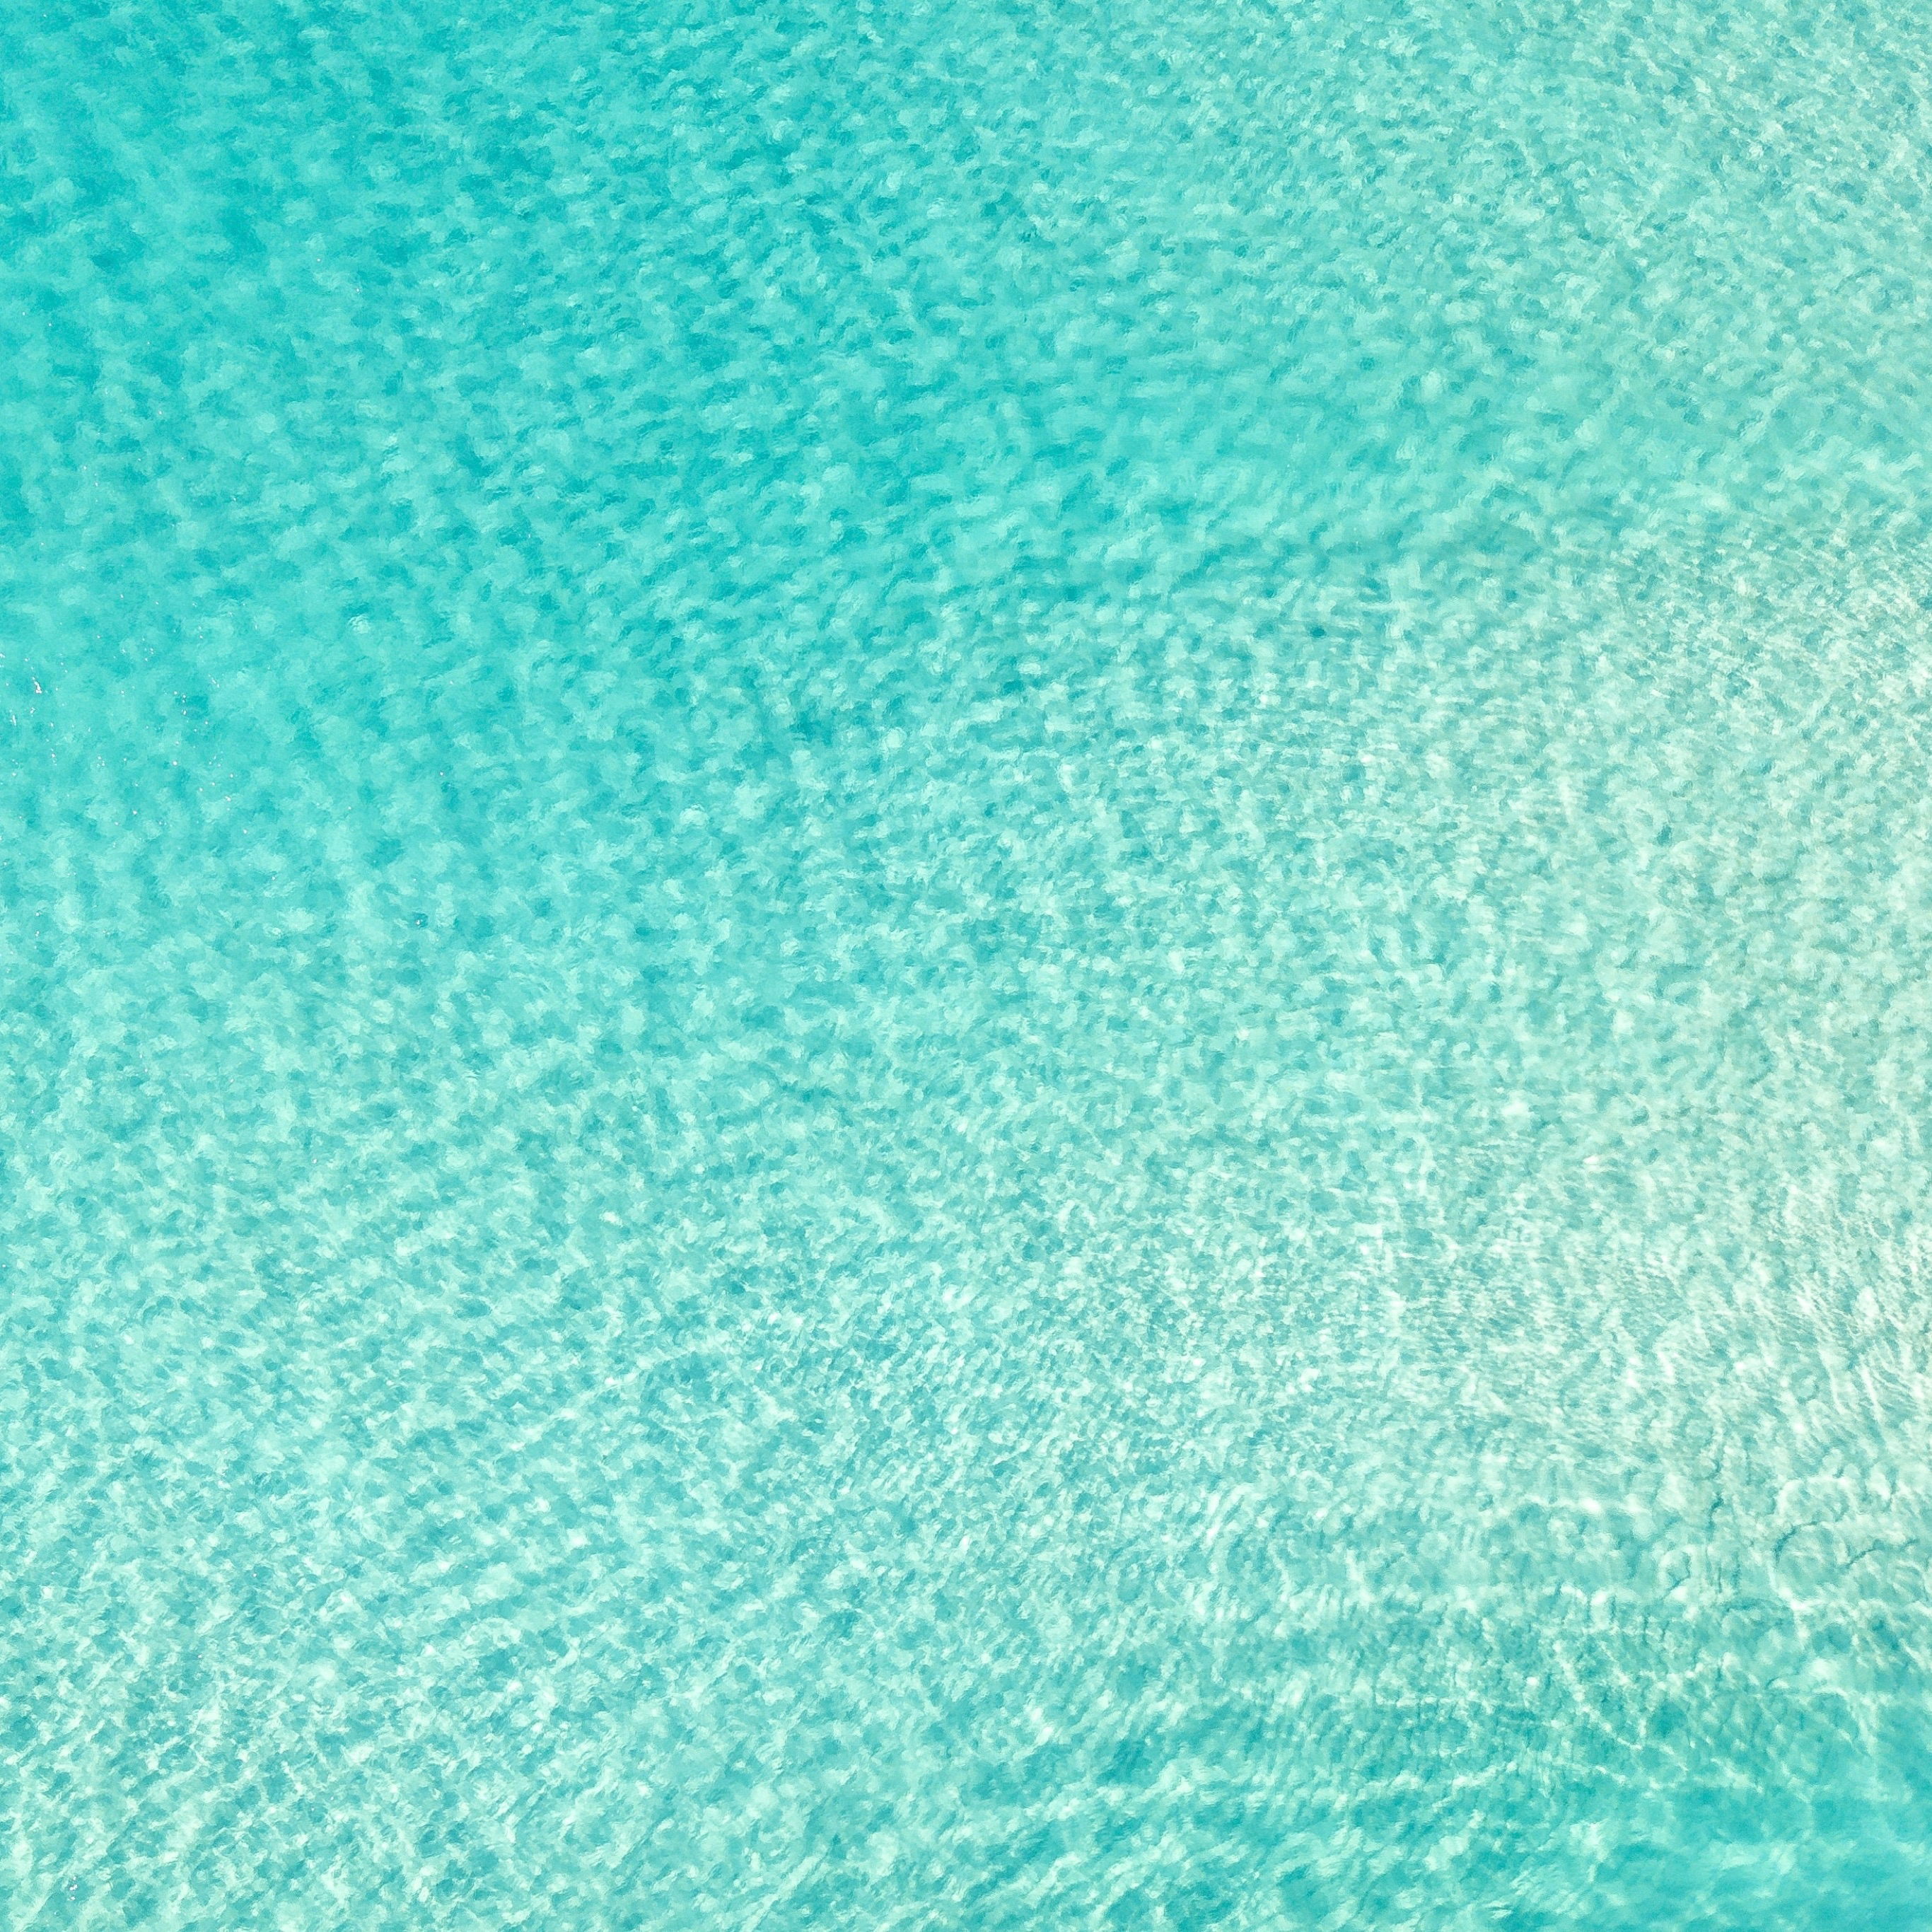 Wallpaper Weekends: Cool Water Wallpaper for iPad, iPhone, Apple Watch